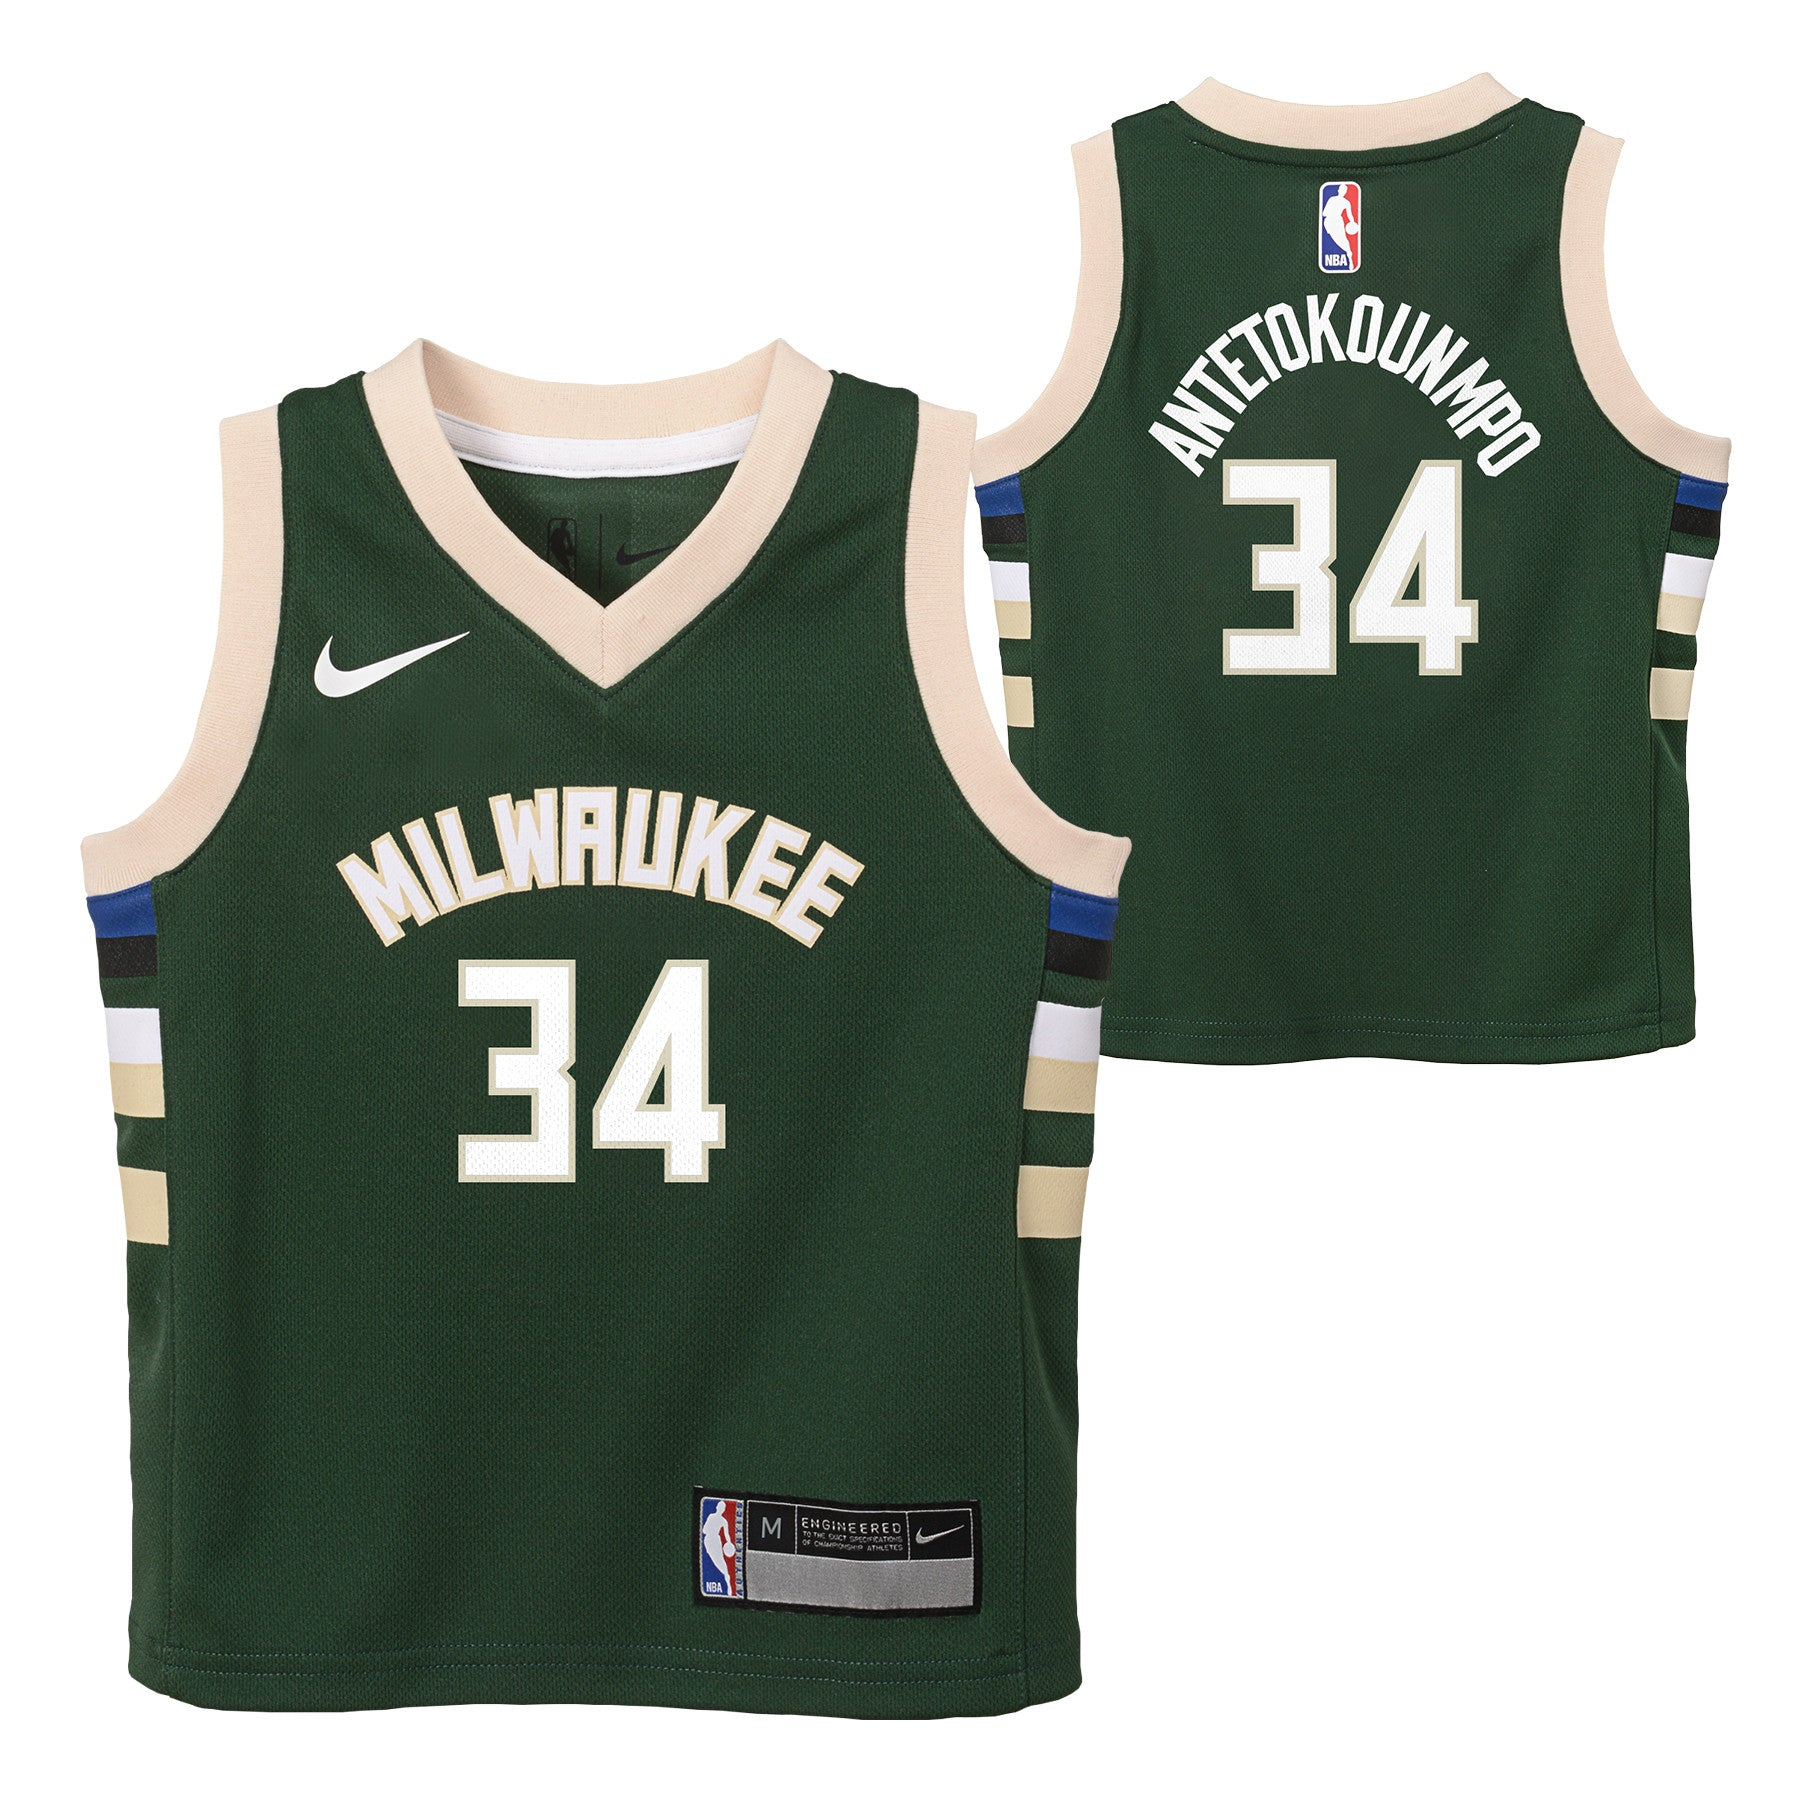 separation shoes 21f4c aee2d Giannis Antetokounmpo Milwaukee Bucks Icon Edition Boys NBA Jersey